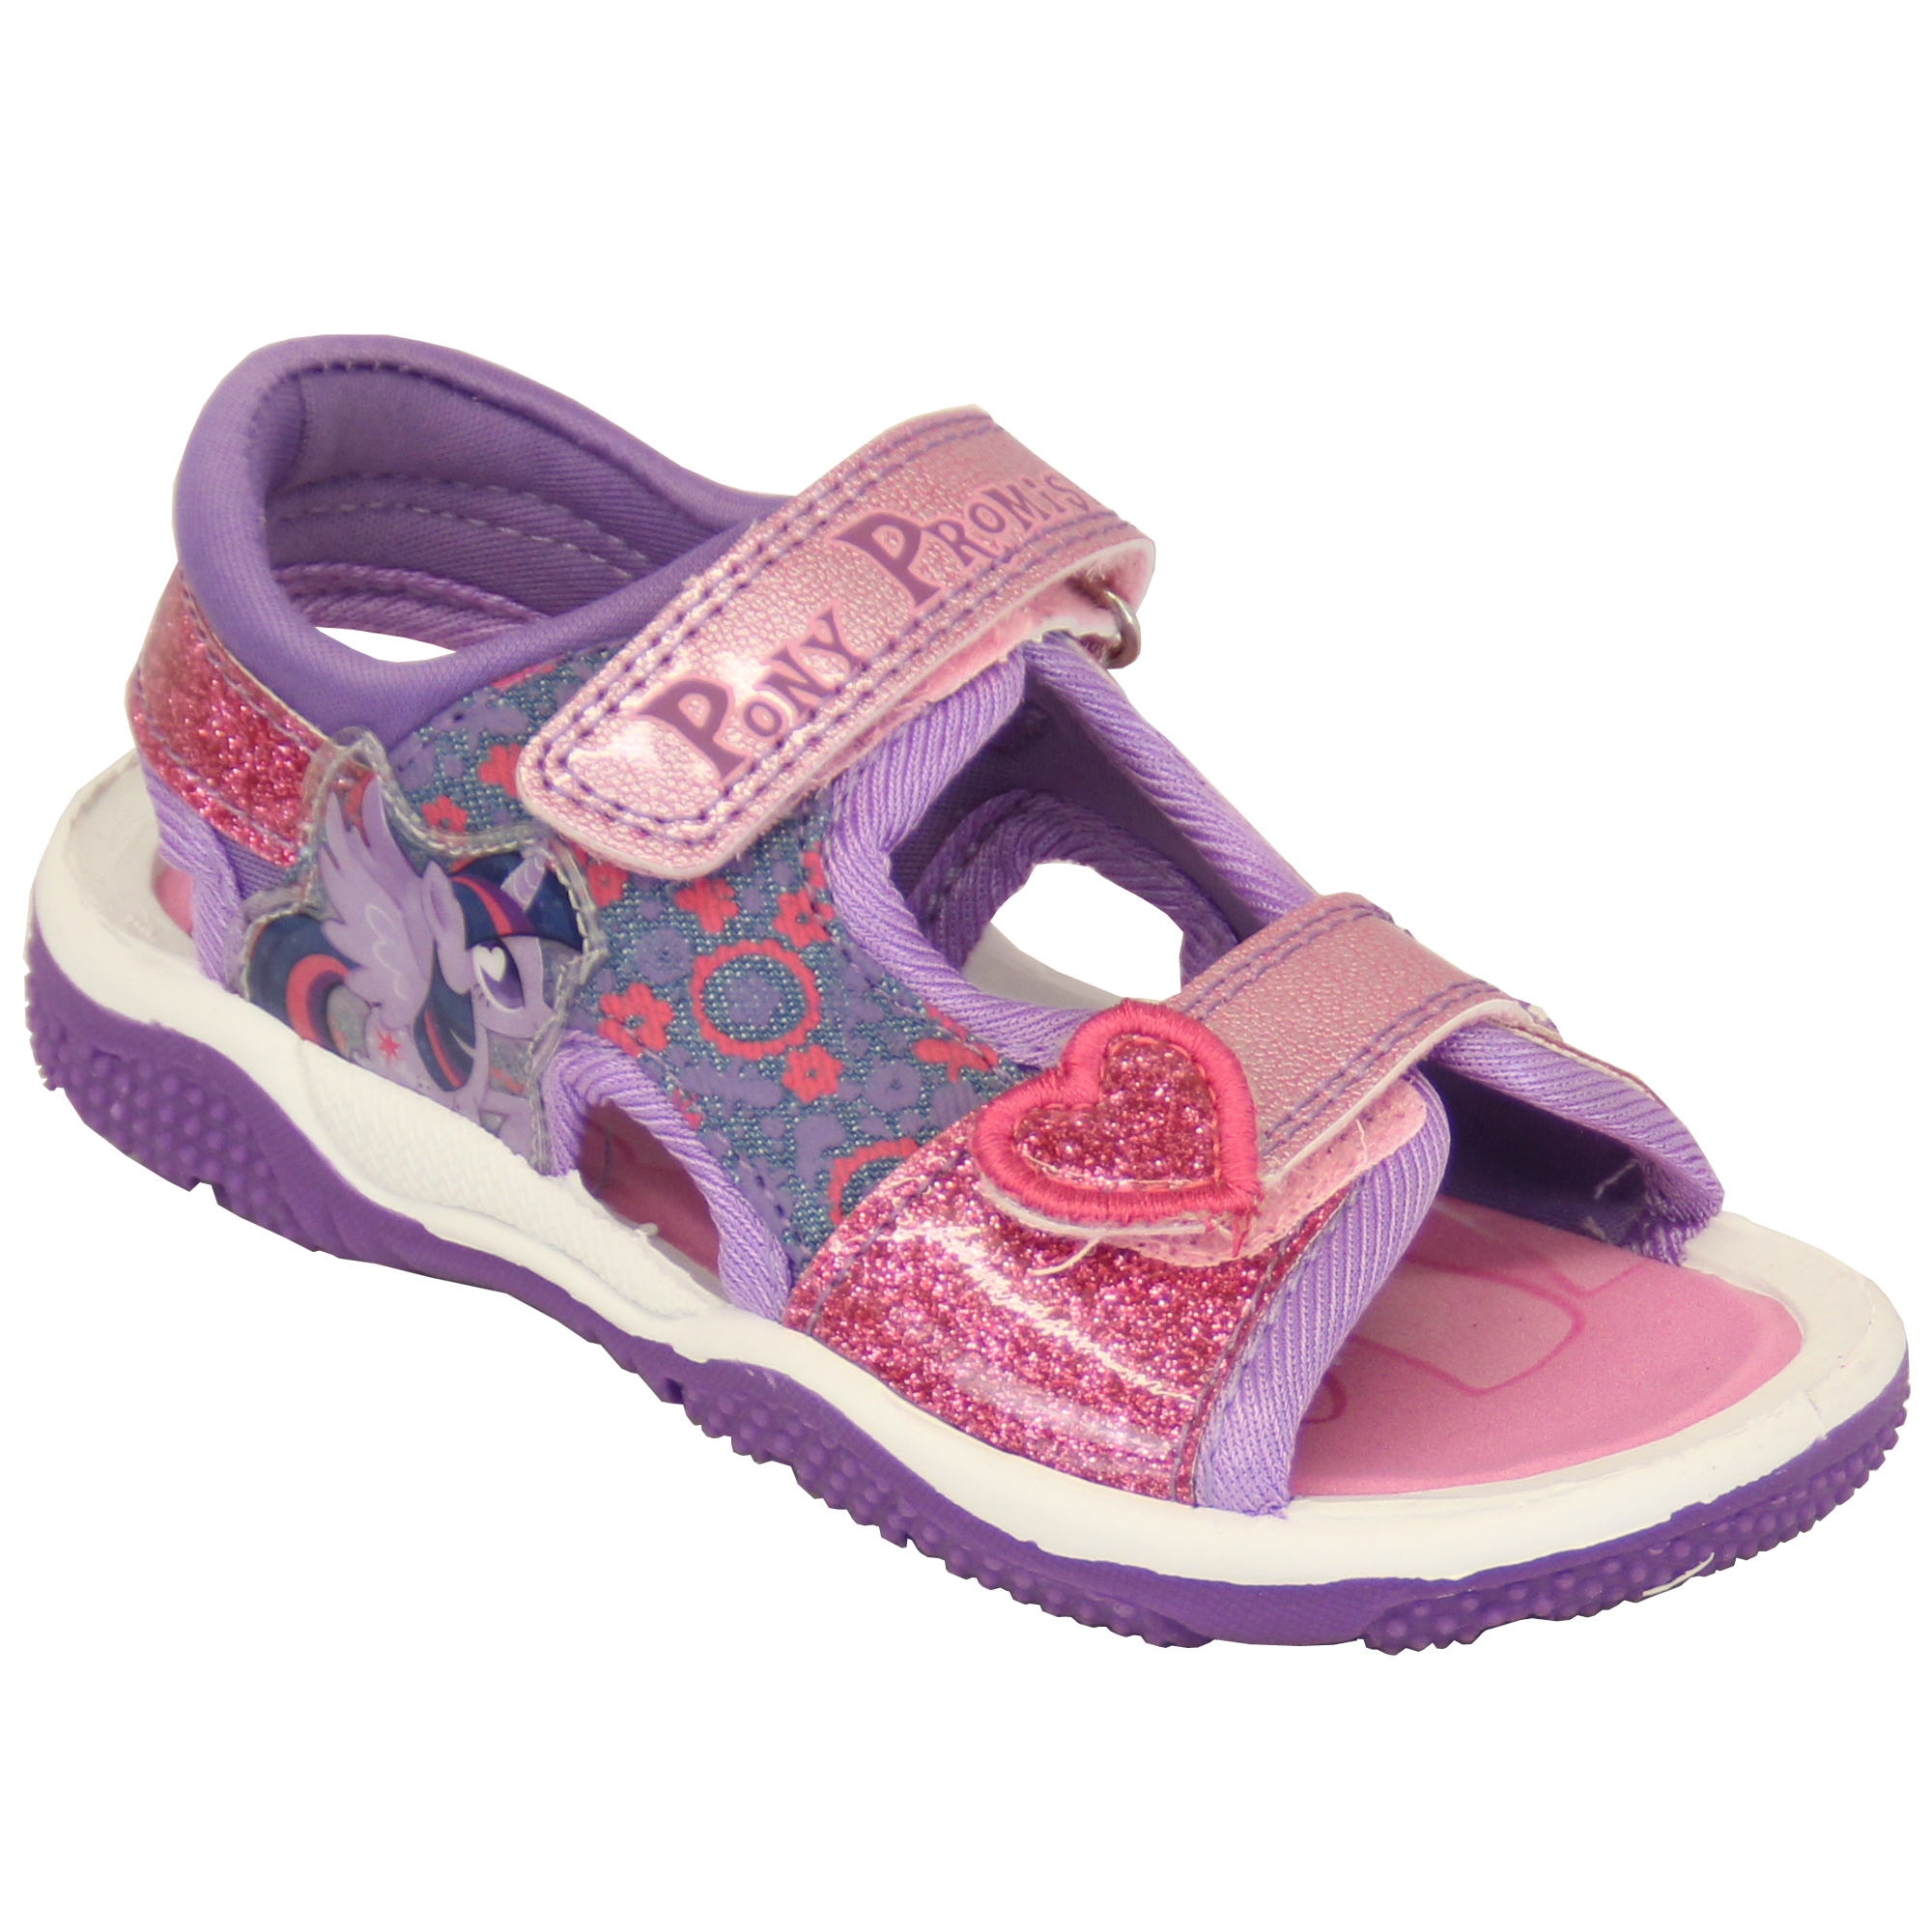 78b6cc773eed Girls Sandals My Little Pony Kids Floral Glitter Heart Strap Sports ...